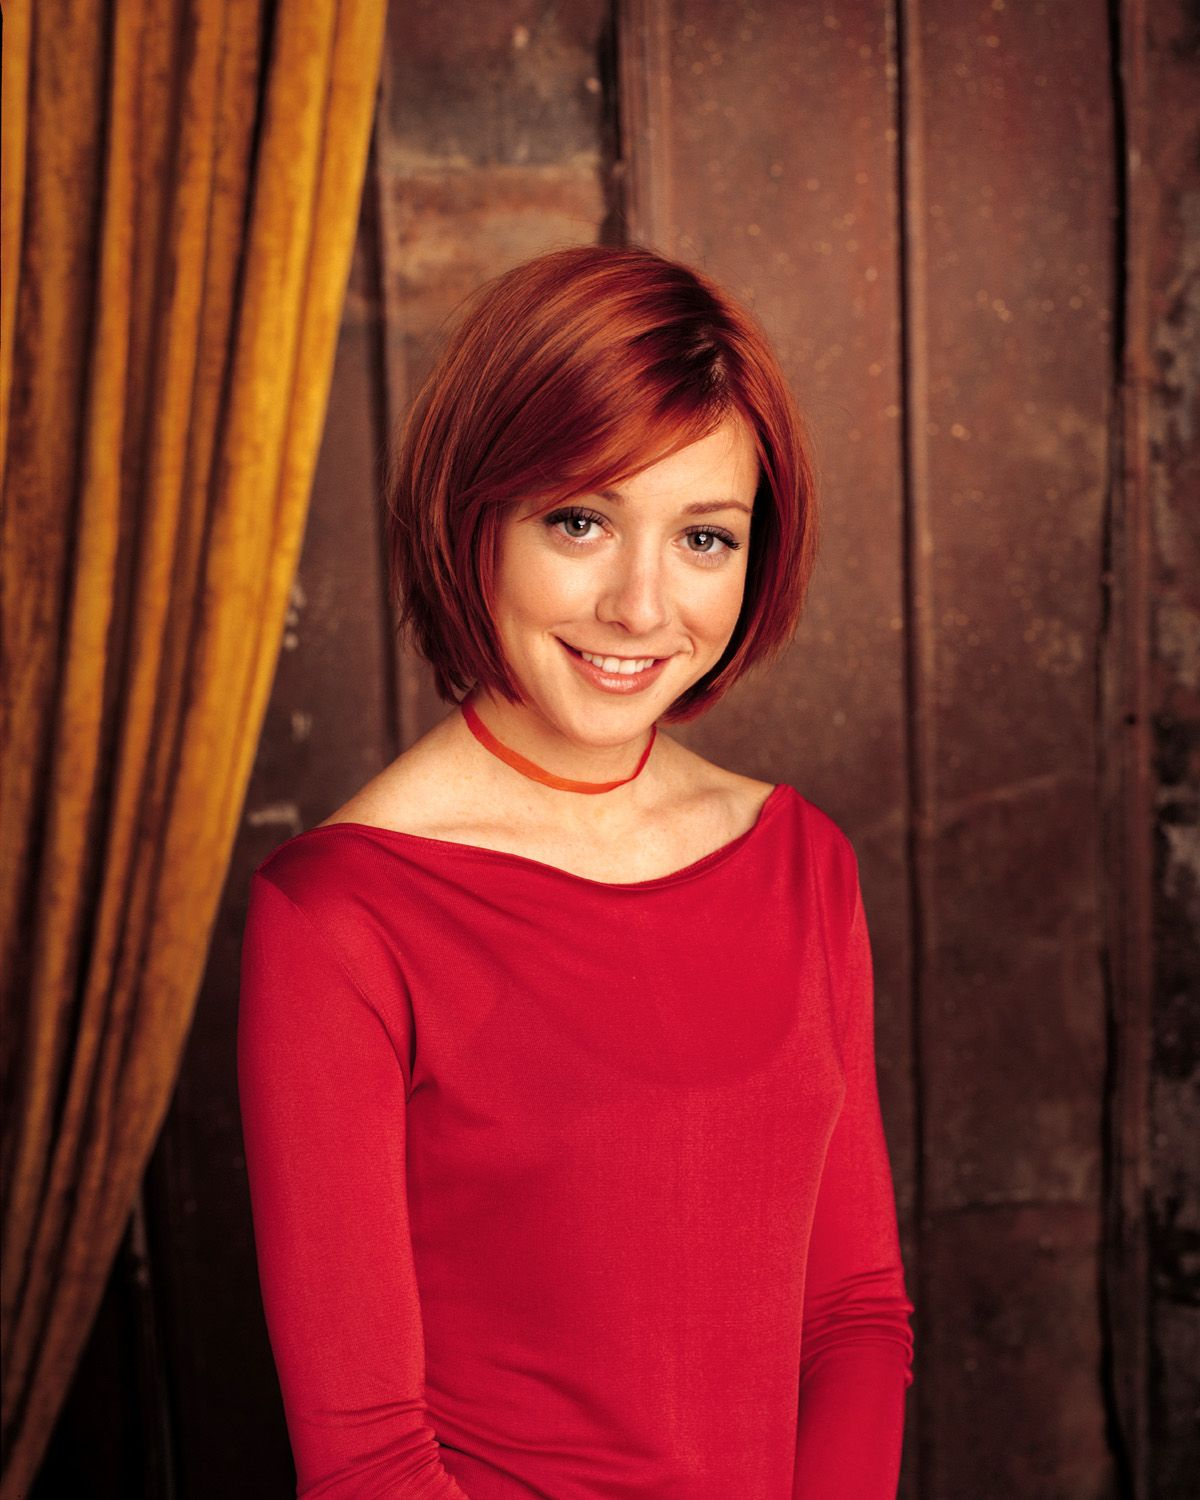 Alyson Hannigan Pokies buffy the vampire slayer, gallery 1/10 | dvdbash